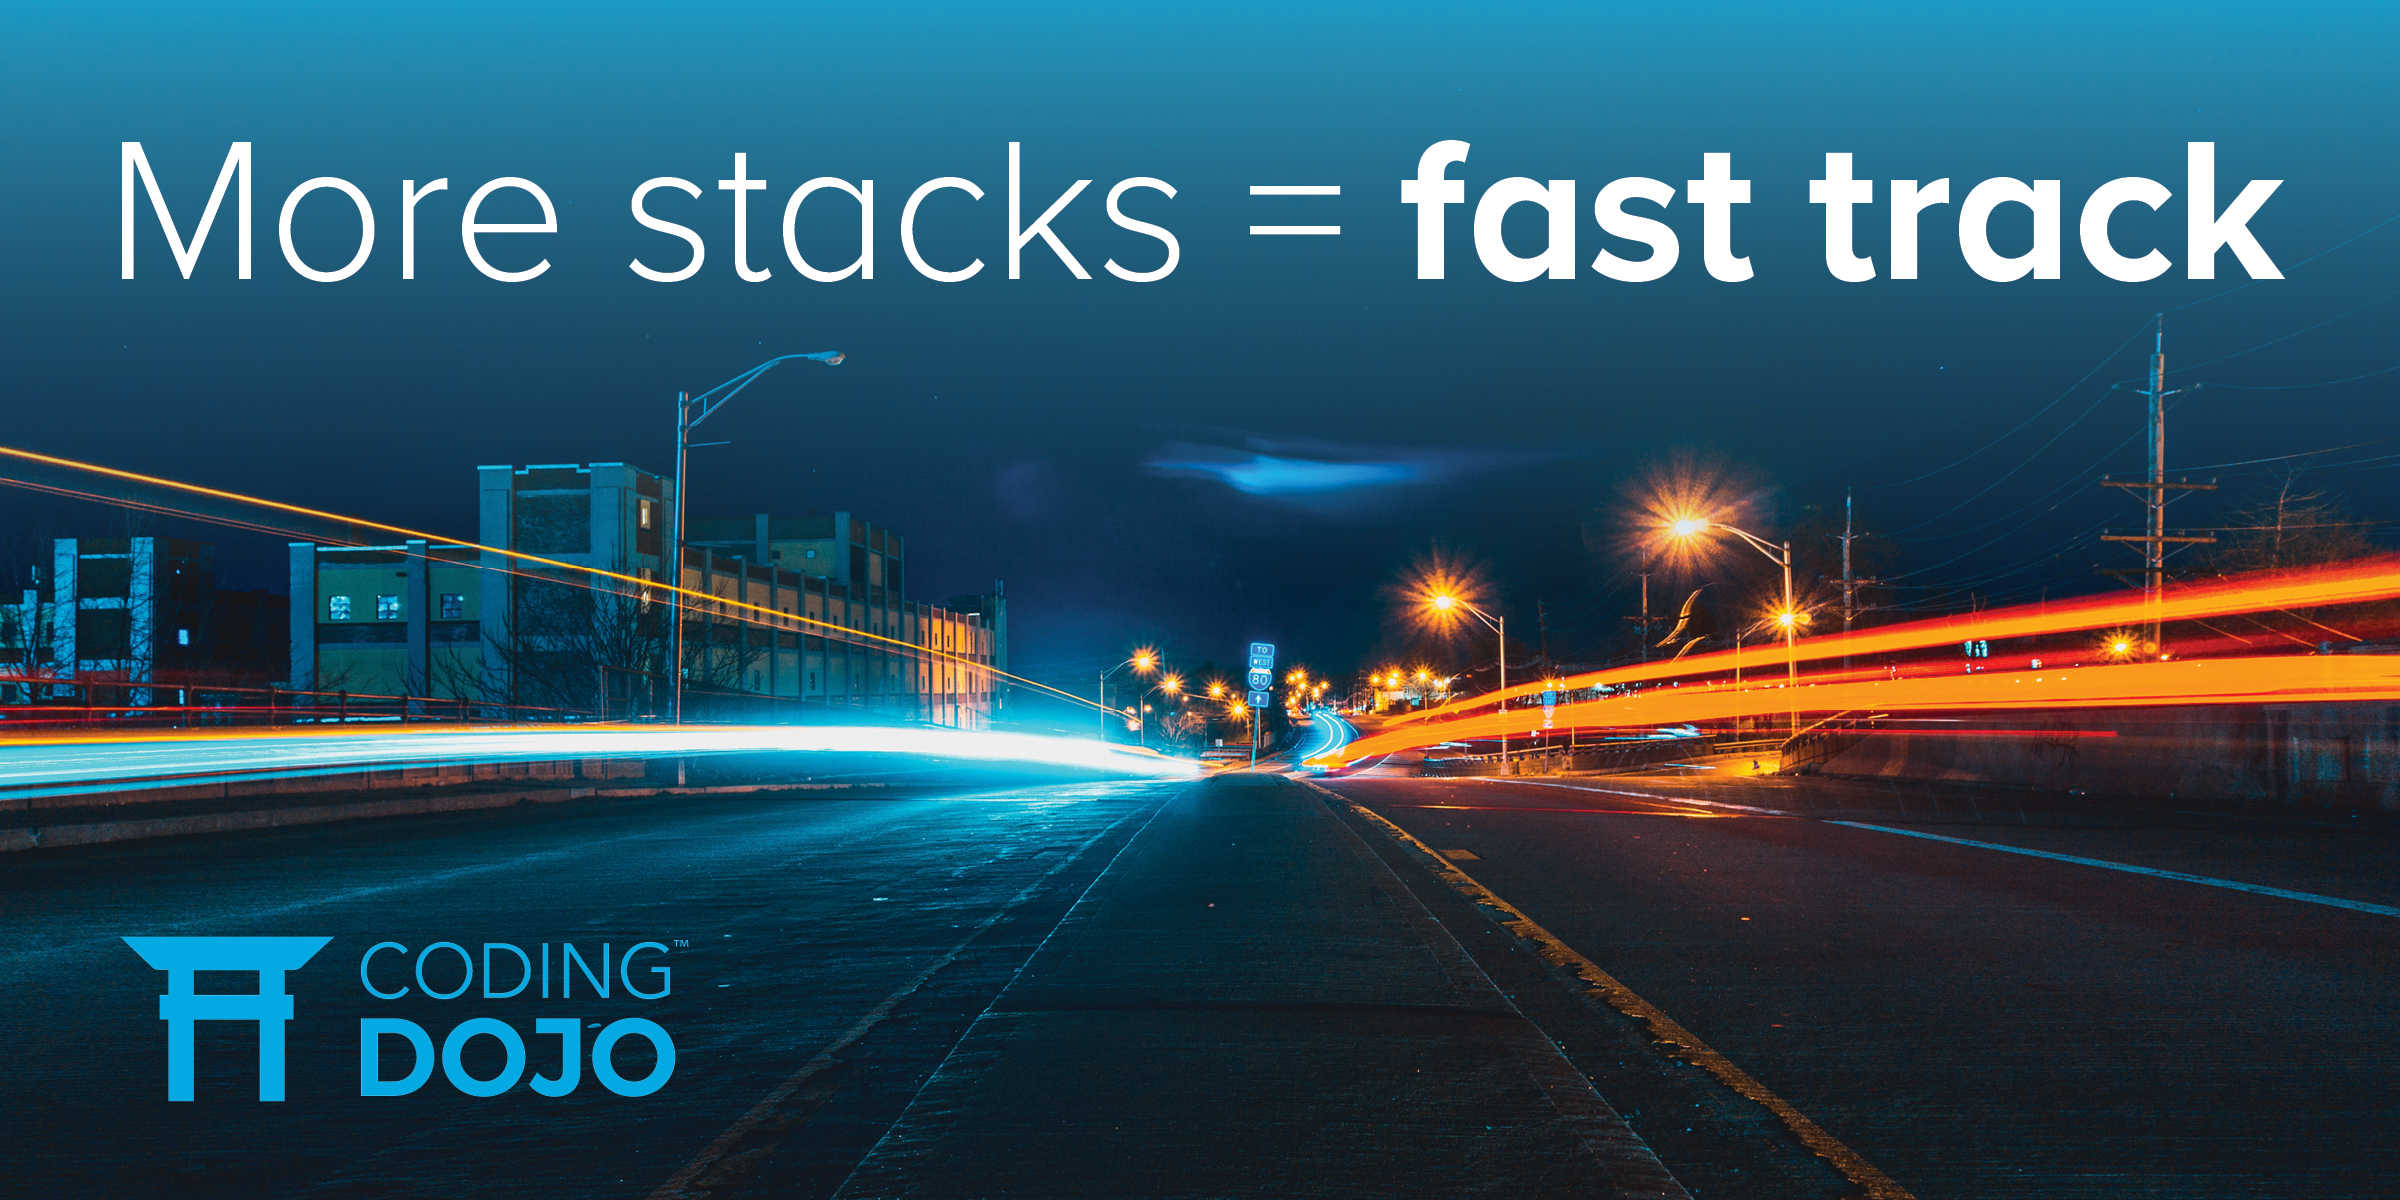 More stacks = fast track